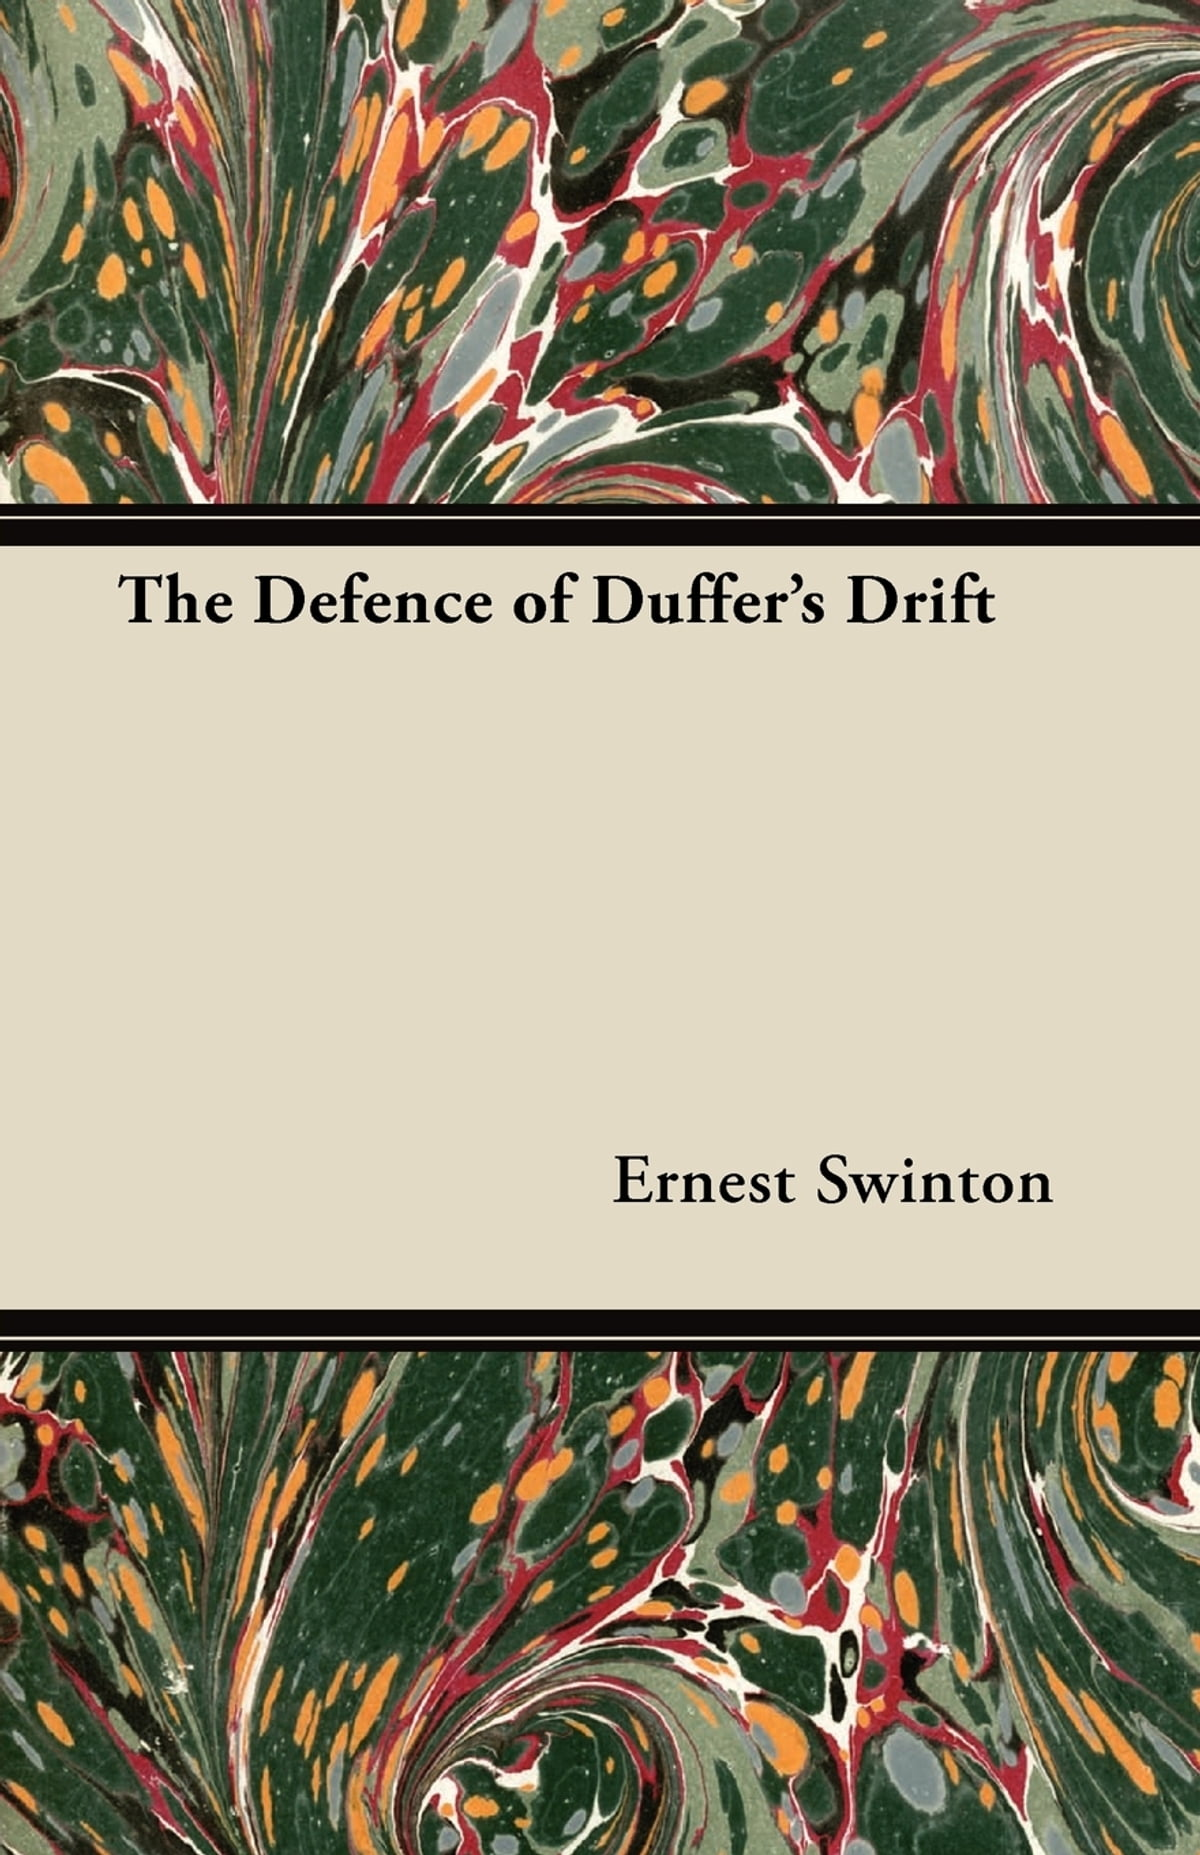 the defence of duffer's drift As a captain, shortly after service in the boer war, he wrote the defence of duffer's drift, using the pseudonym, lieutenant backsight forethought, or bf duffer's drift has become a military classic on minor tactics in this century.